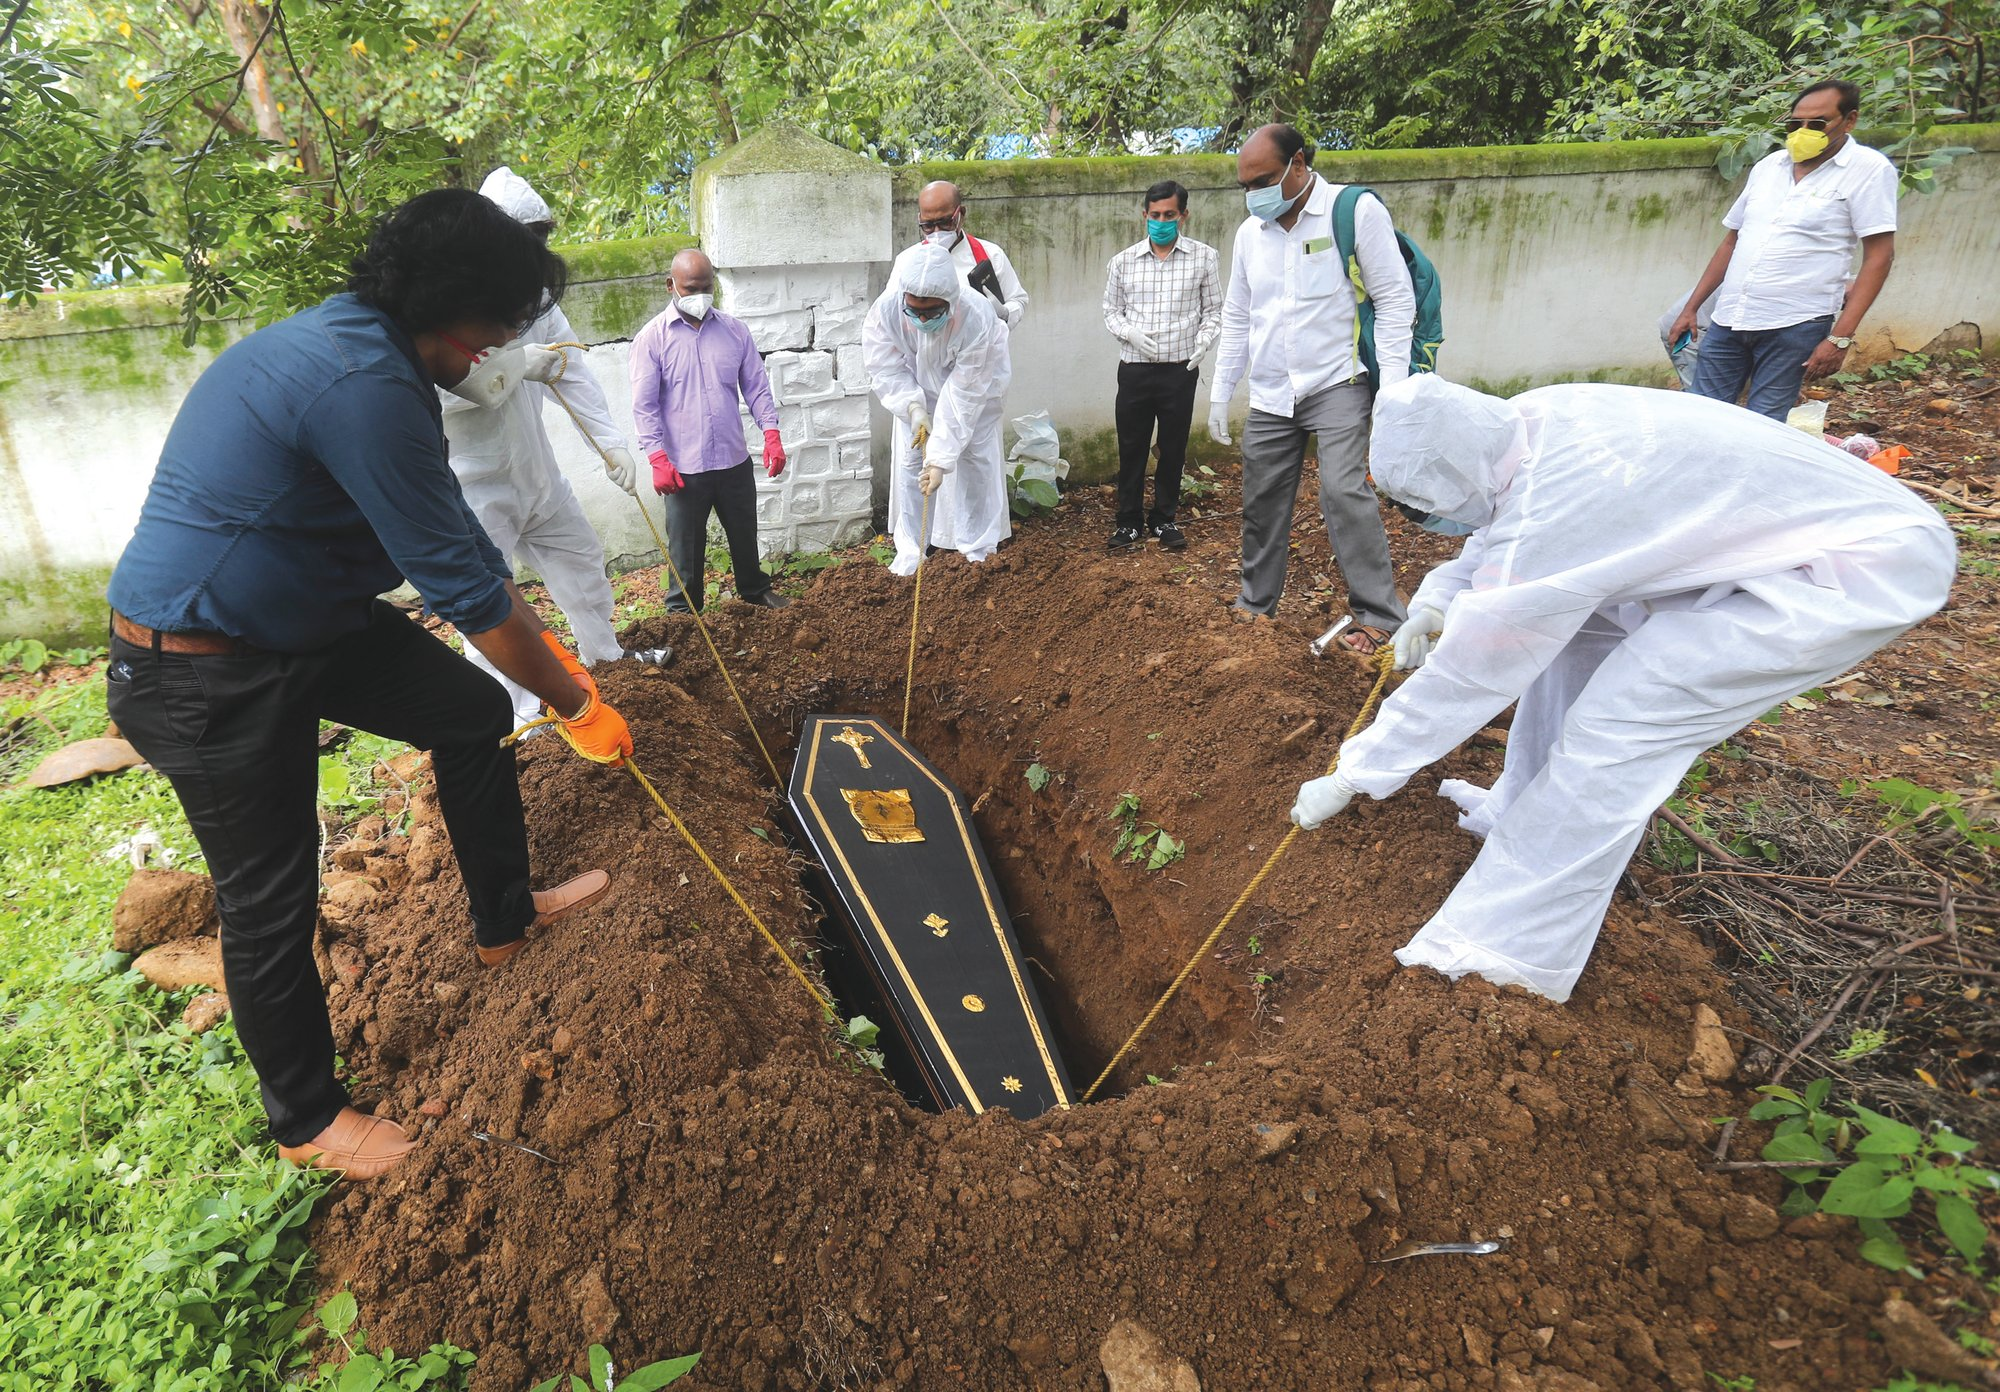 THE ASSOCIATED PRESS  People lower the coffin of a man who died of COVID-19 at a cemetery in Mumbai, India, on Tuesday. Some Indian states Tuesday were considering fresh lockdown measures to try to halt the spread of the virus in the nation of more than 1.3 billion.